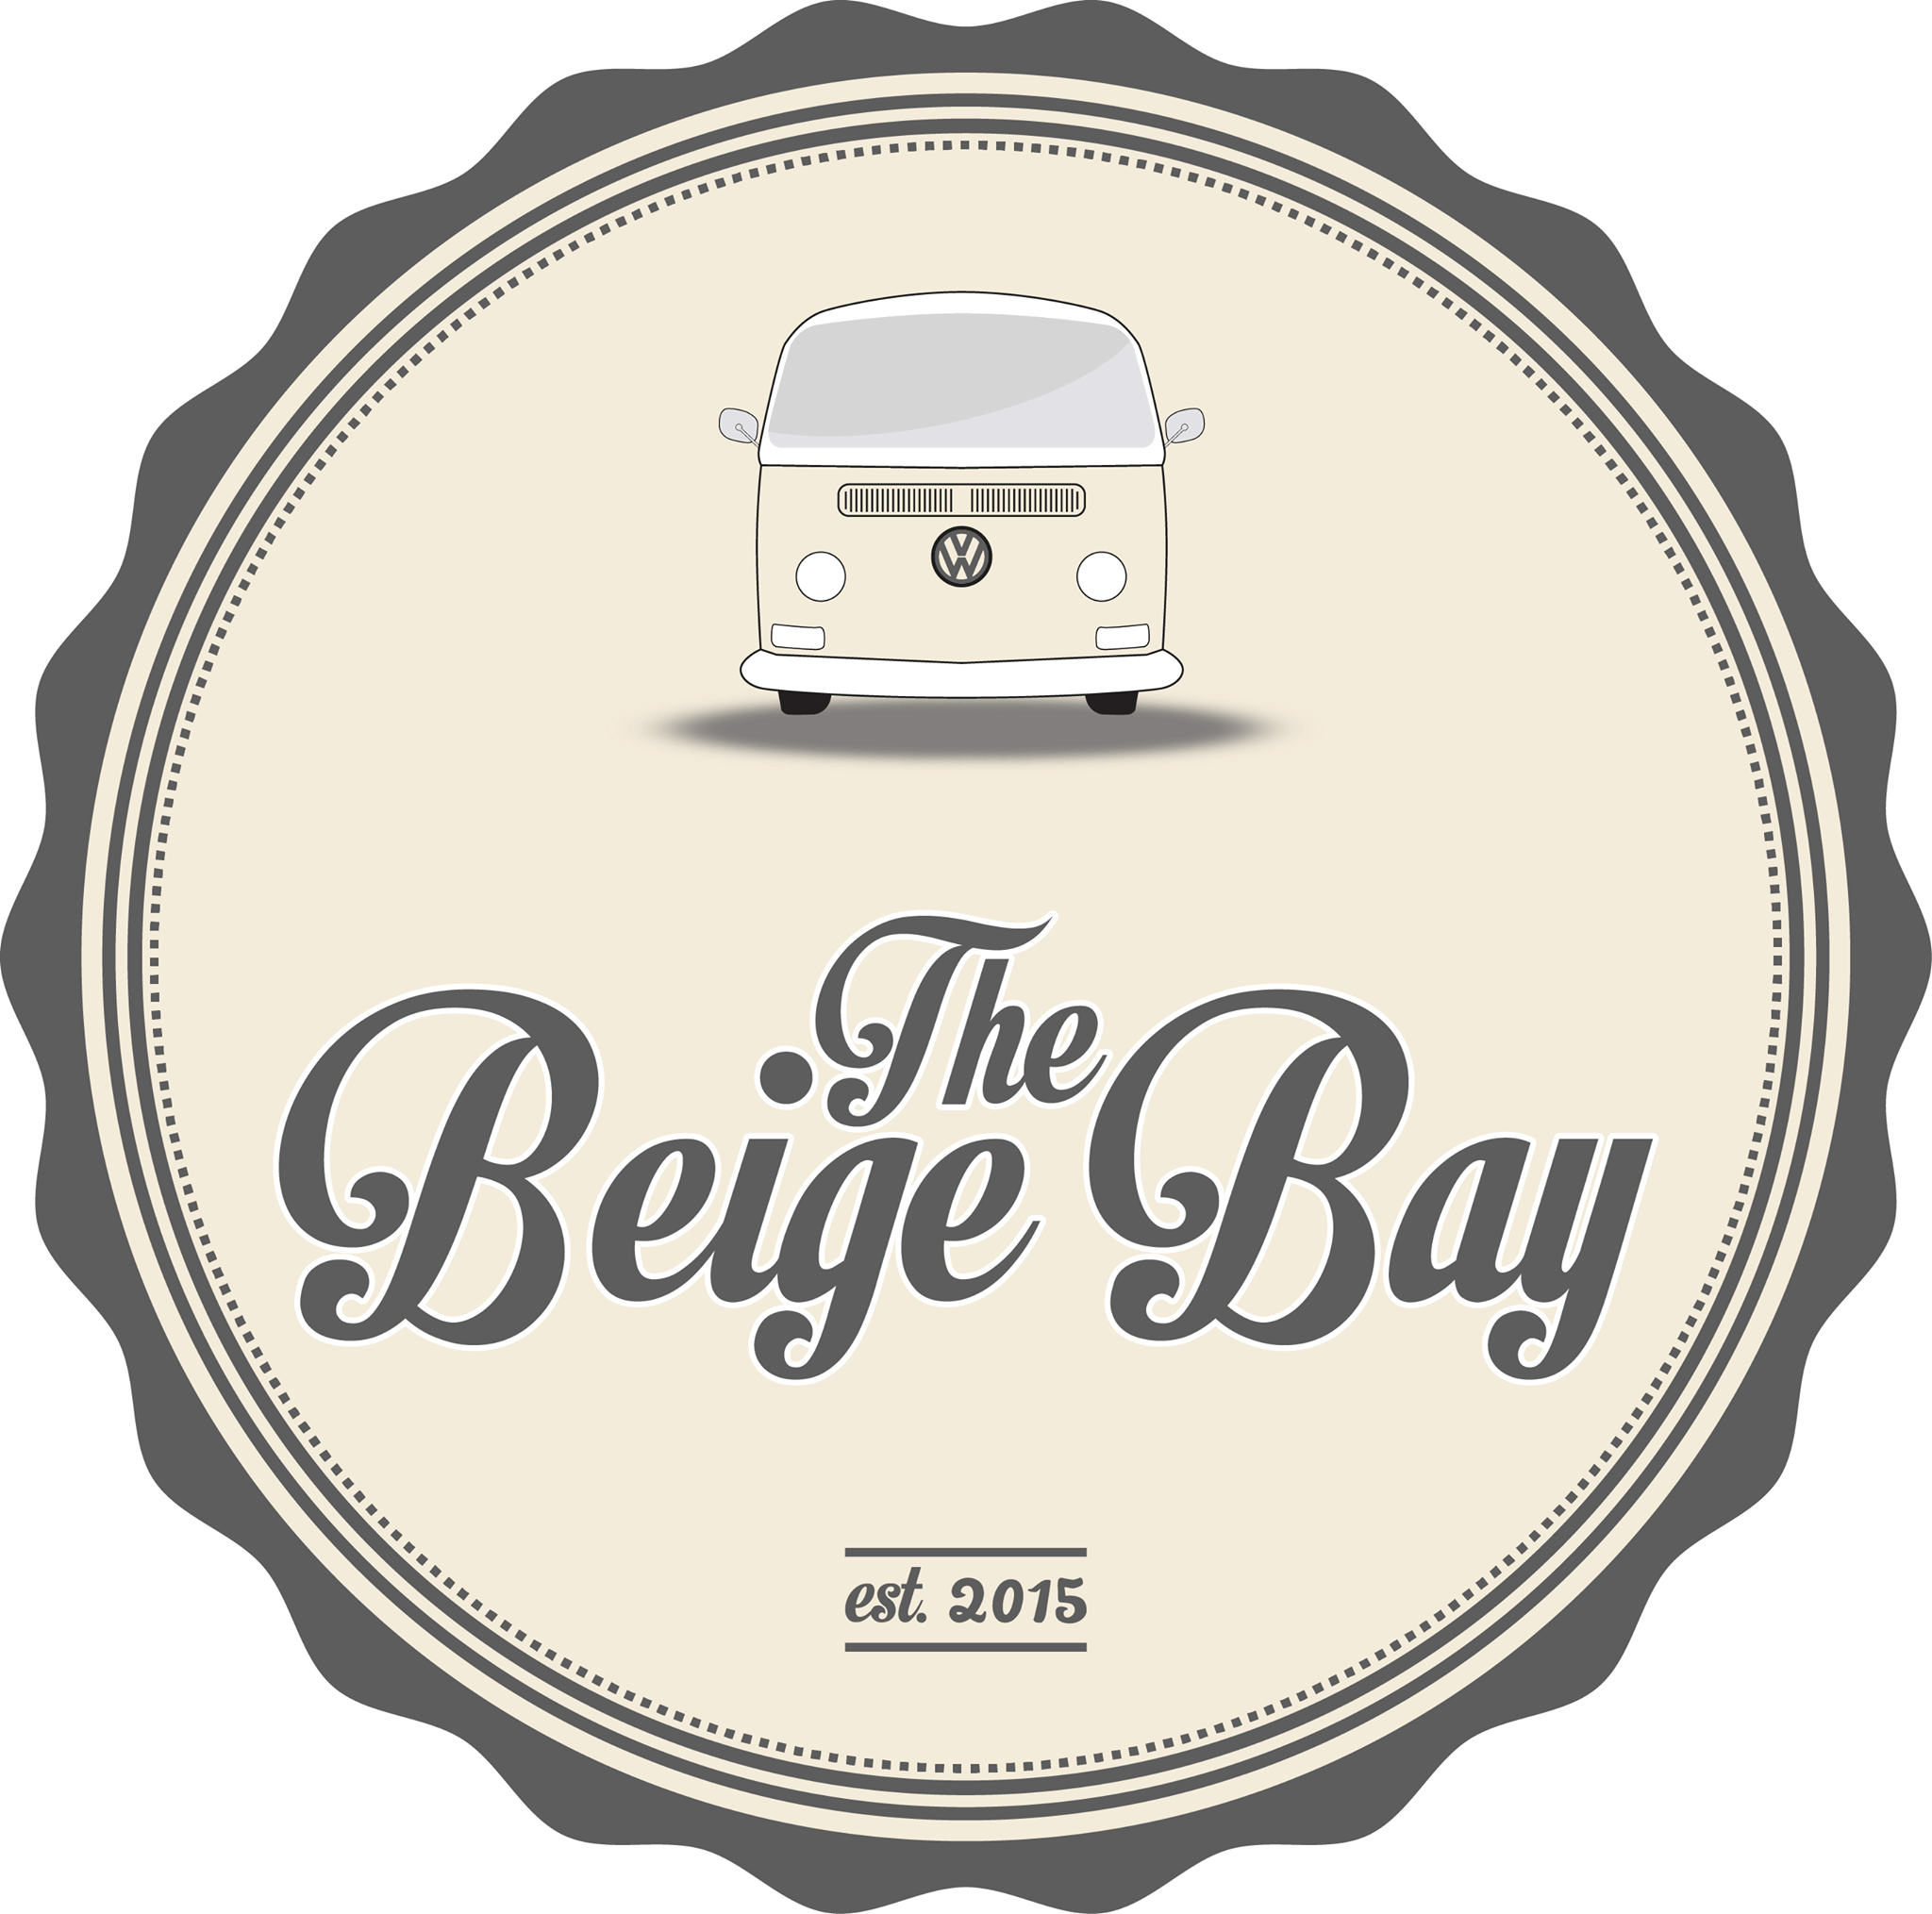 The Beige Bay